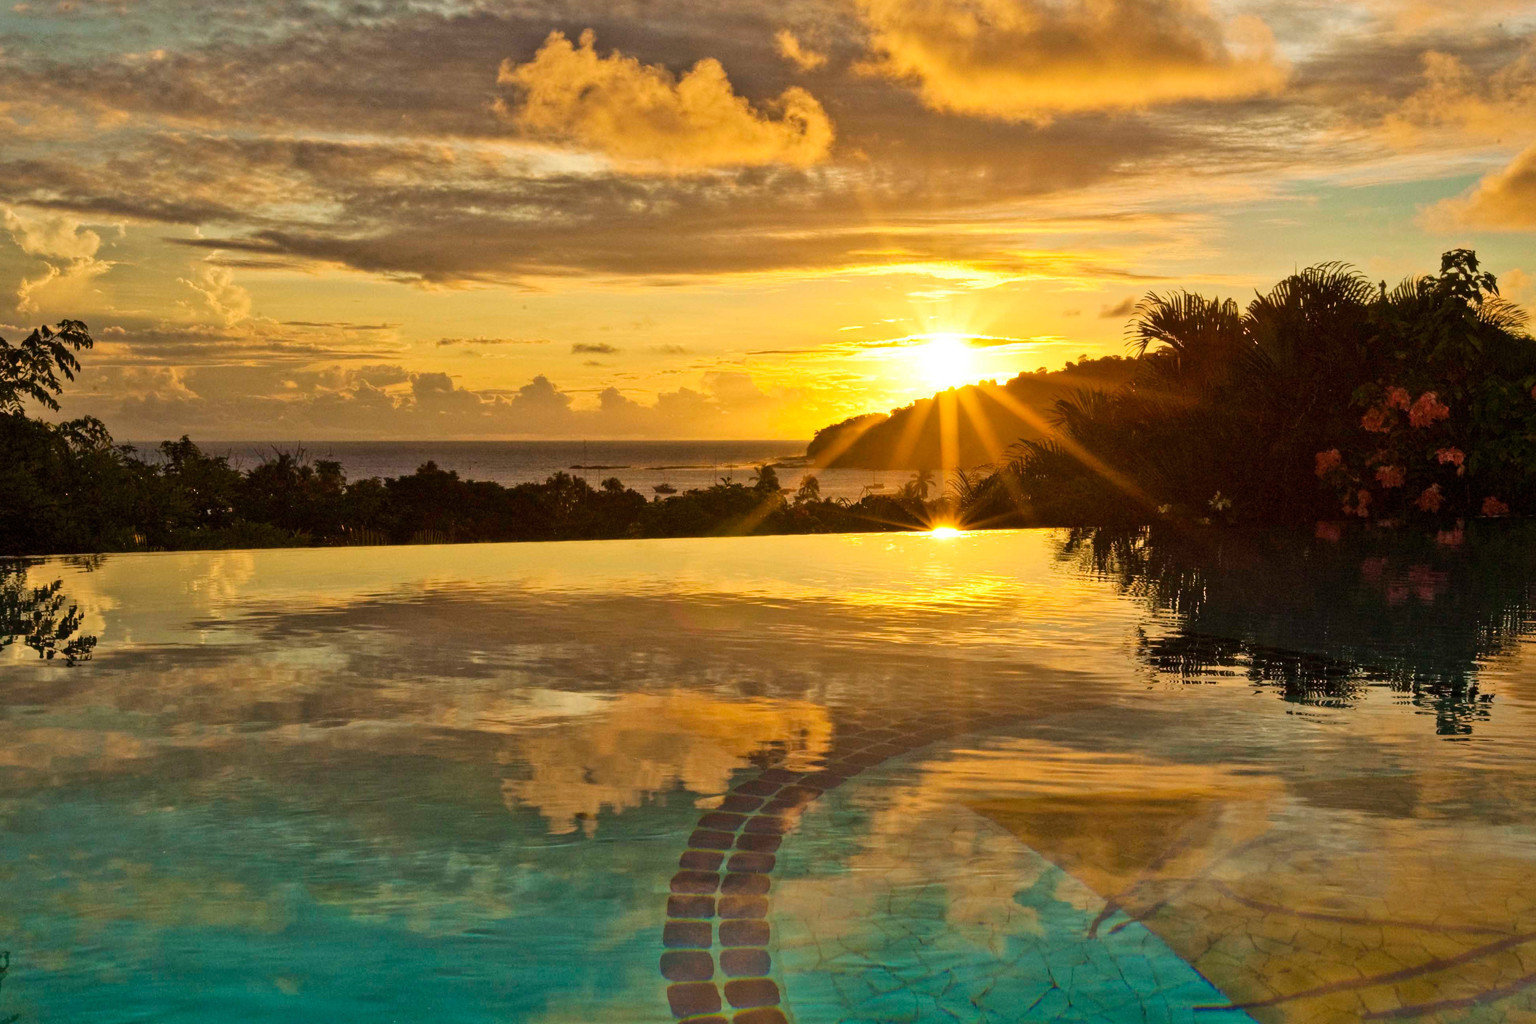 Luxury Pool Rustic Scenic views Tropical tree Sunset water Sun shore horizon Sea morning cloud sunlight evening Ocean setting Nature sunrise dusk Coast dawn computer wallpaper clouds